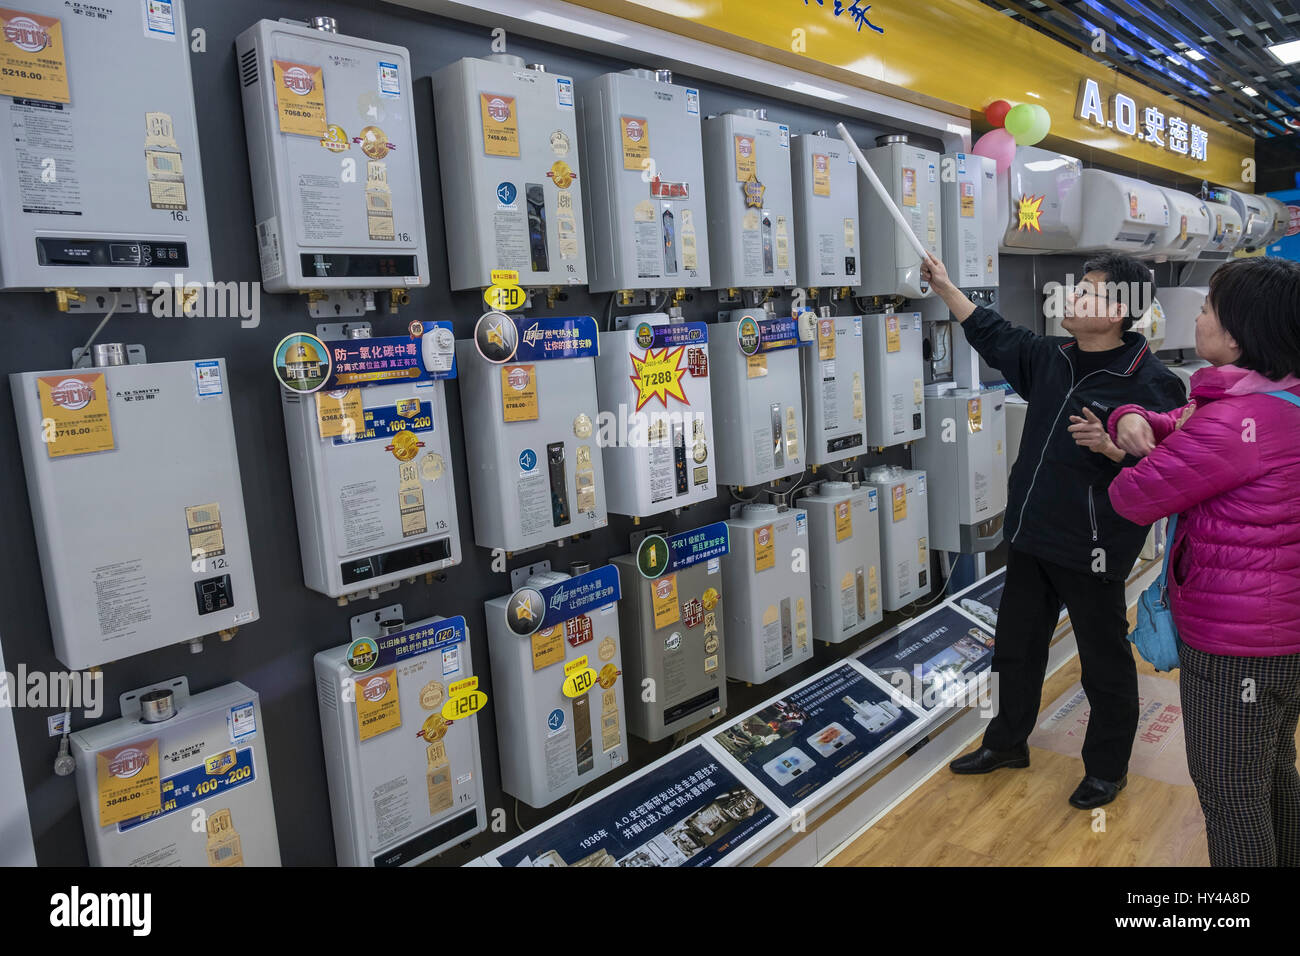 A.O. Smith Water Heaters are on sale in a B&Q store in Beijing, China. - Stock Image